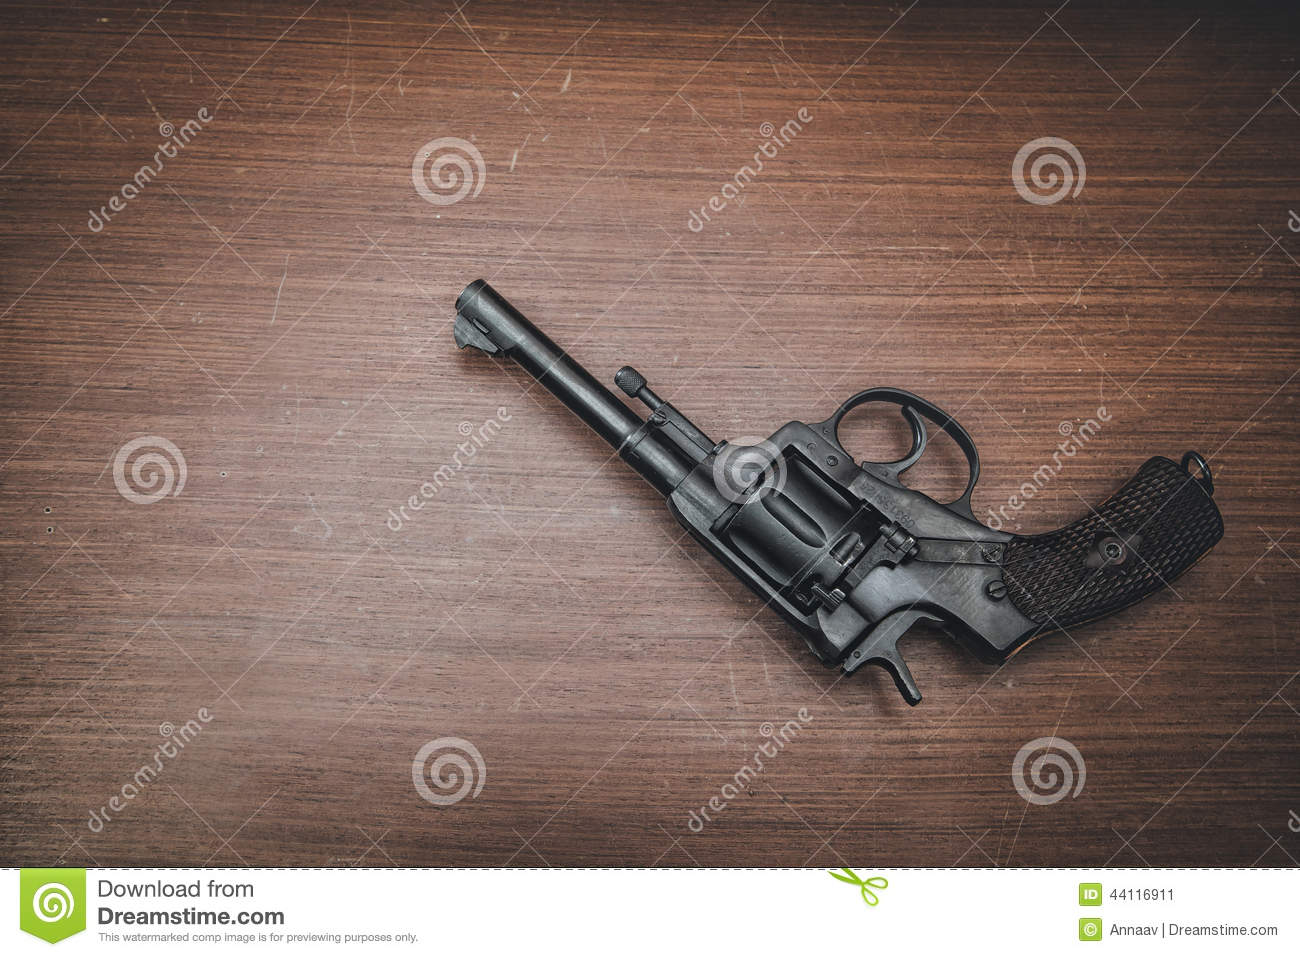 Black Revolver On The Table Stock Photo - Image: 44116911